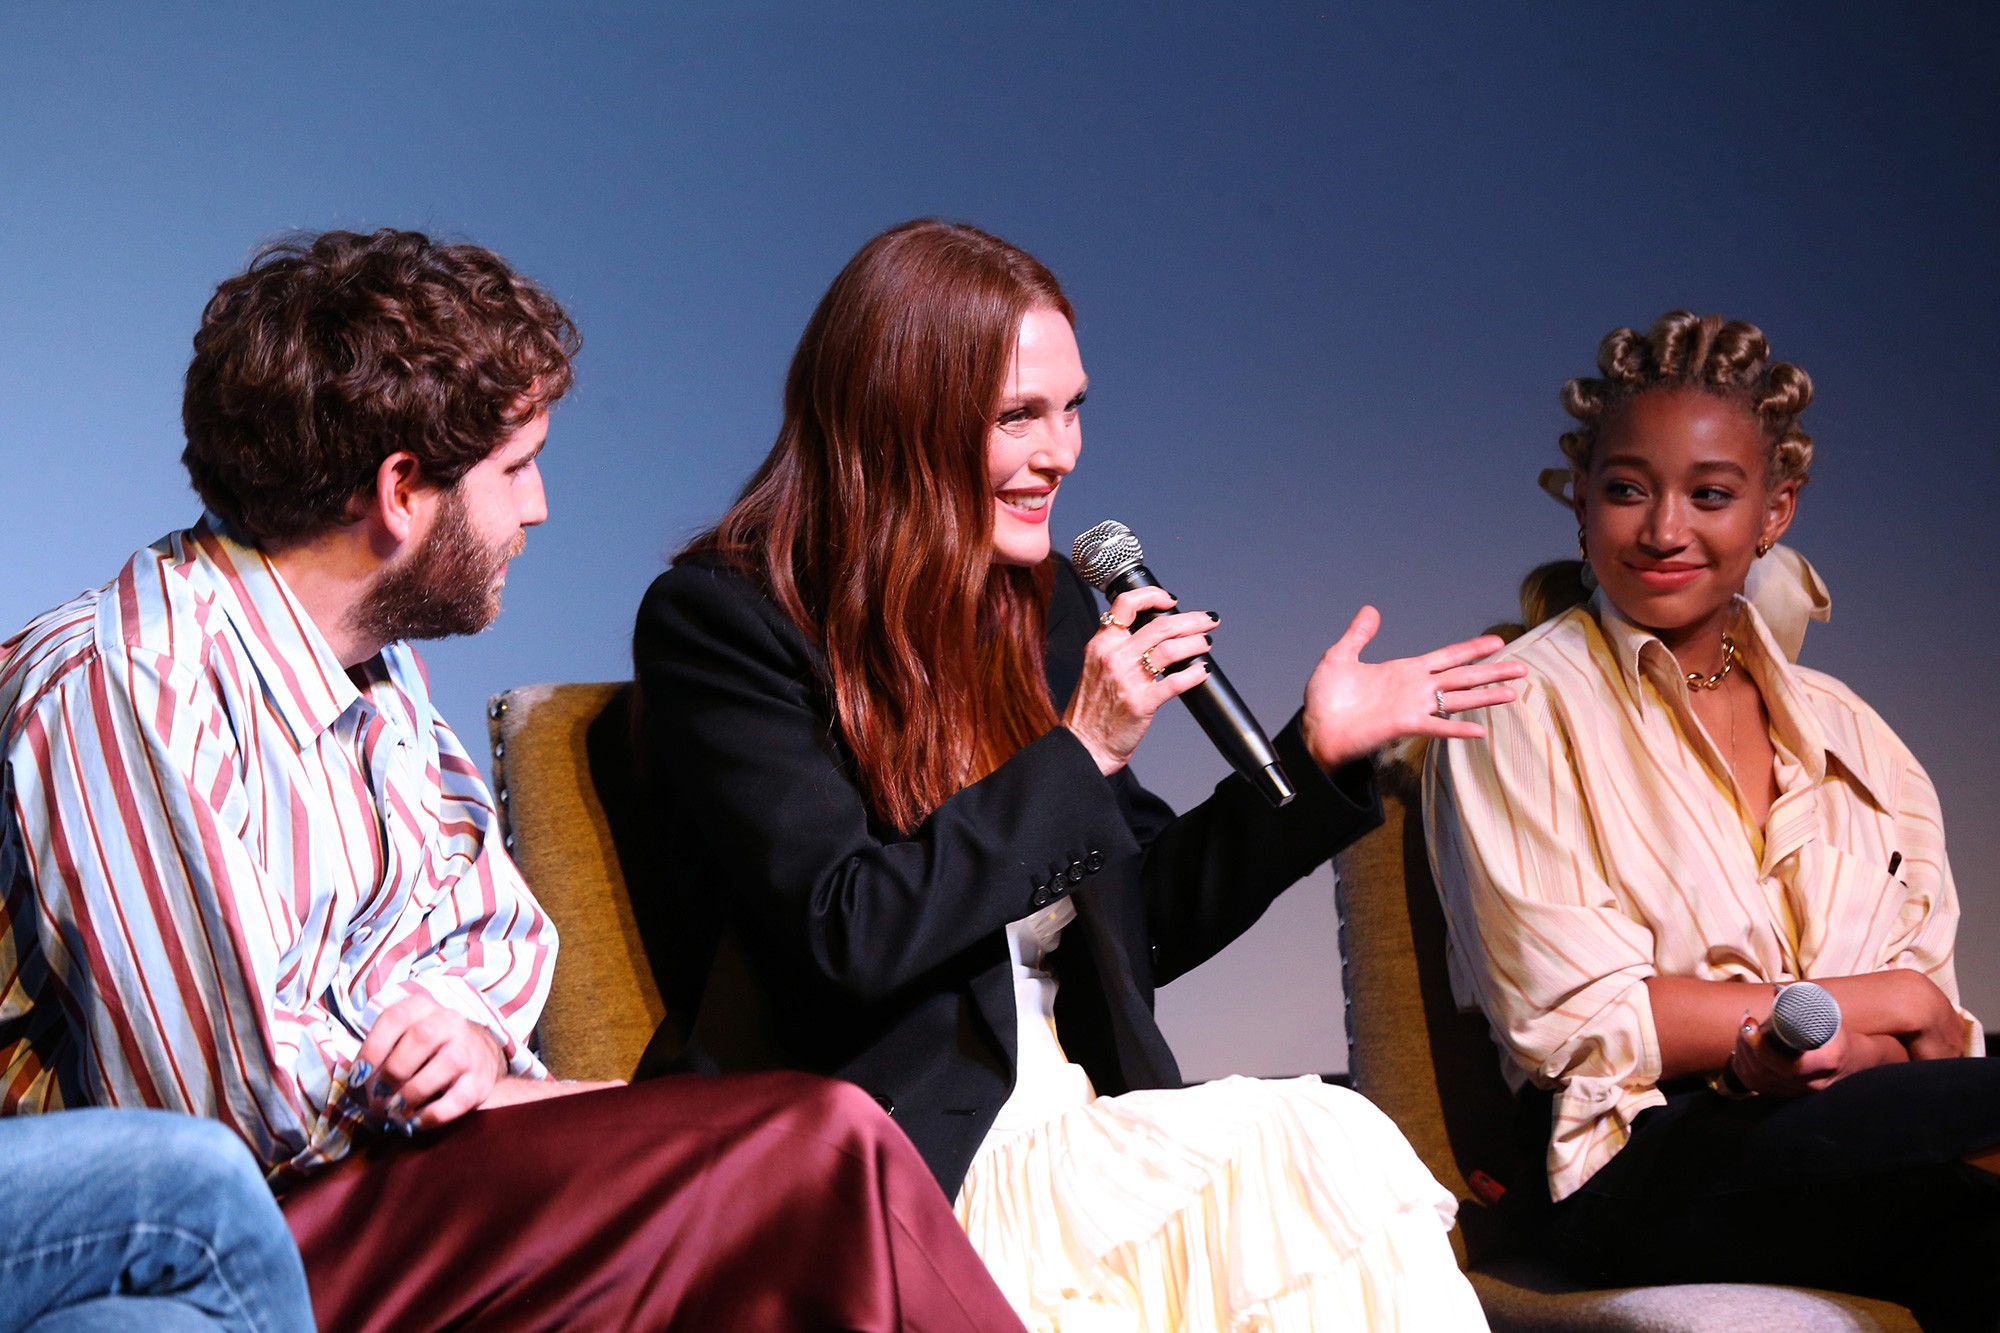 Ben Platt, Julianne Moore, and Amandla Stenberg speak onstage during a special screening of Dear Evan Hansen presented by Universal Pictures at The Whitby Screening Room on September 14, 2021 in New York City